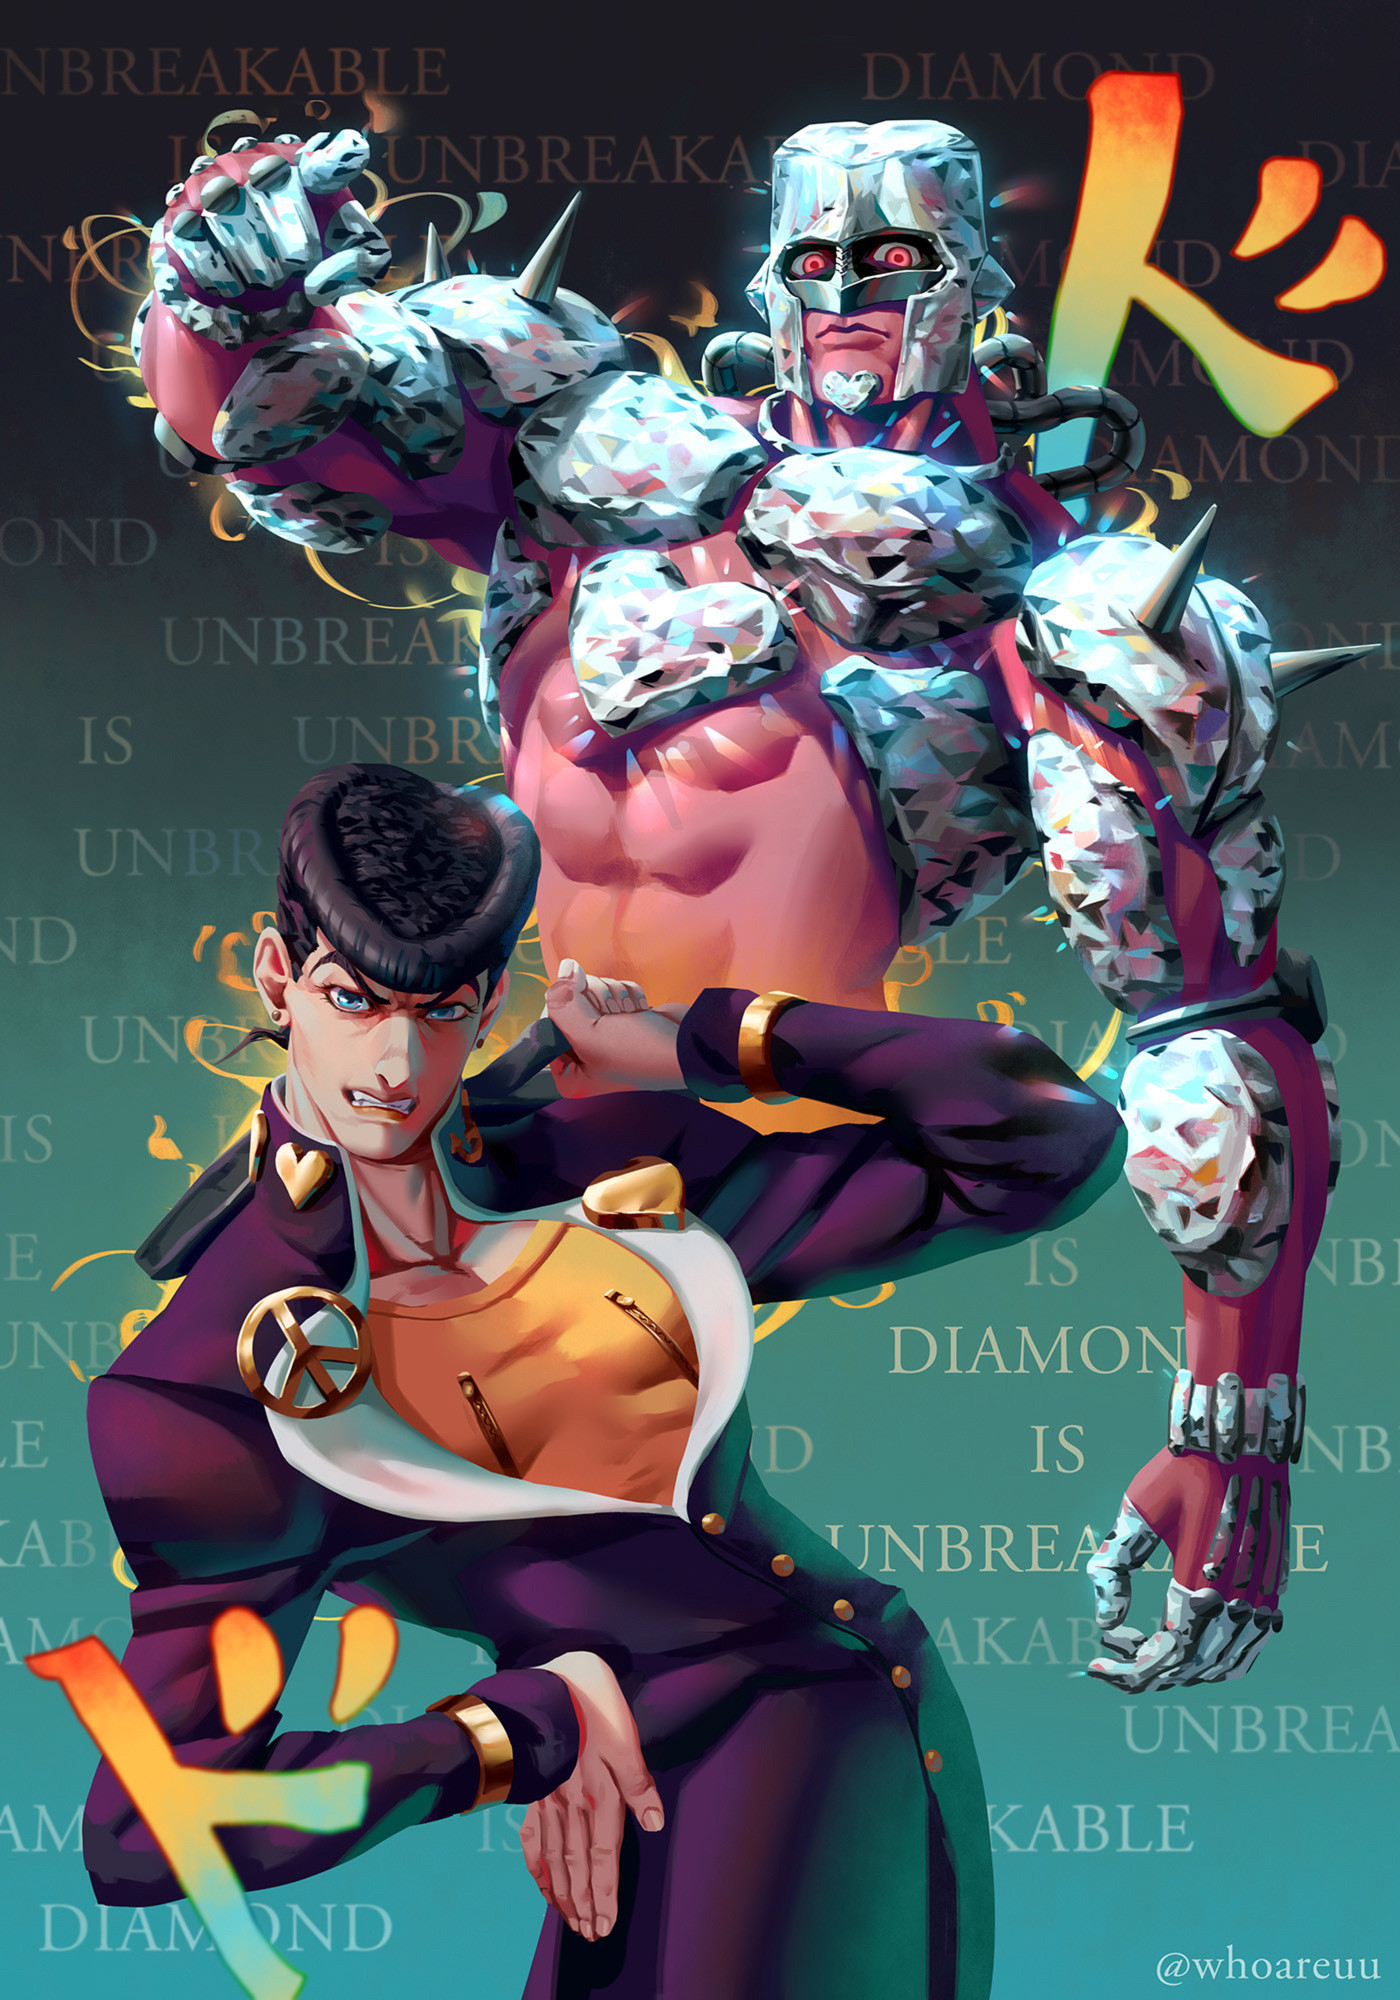 Diamond is unbreakable, WHO ._01